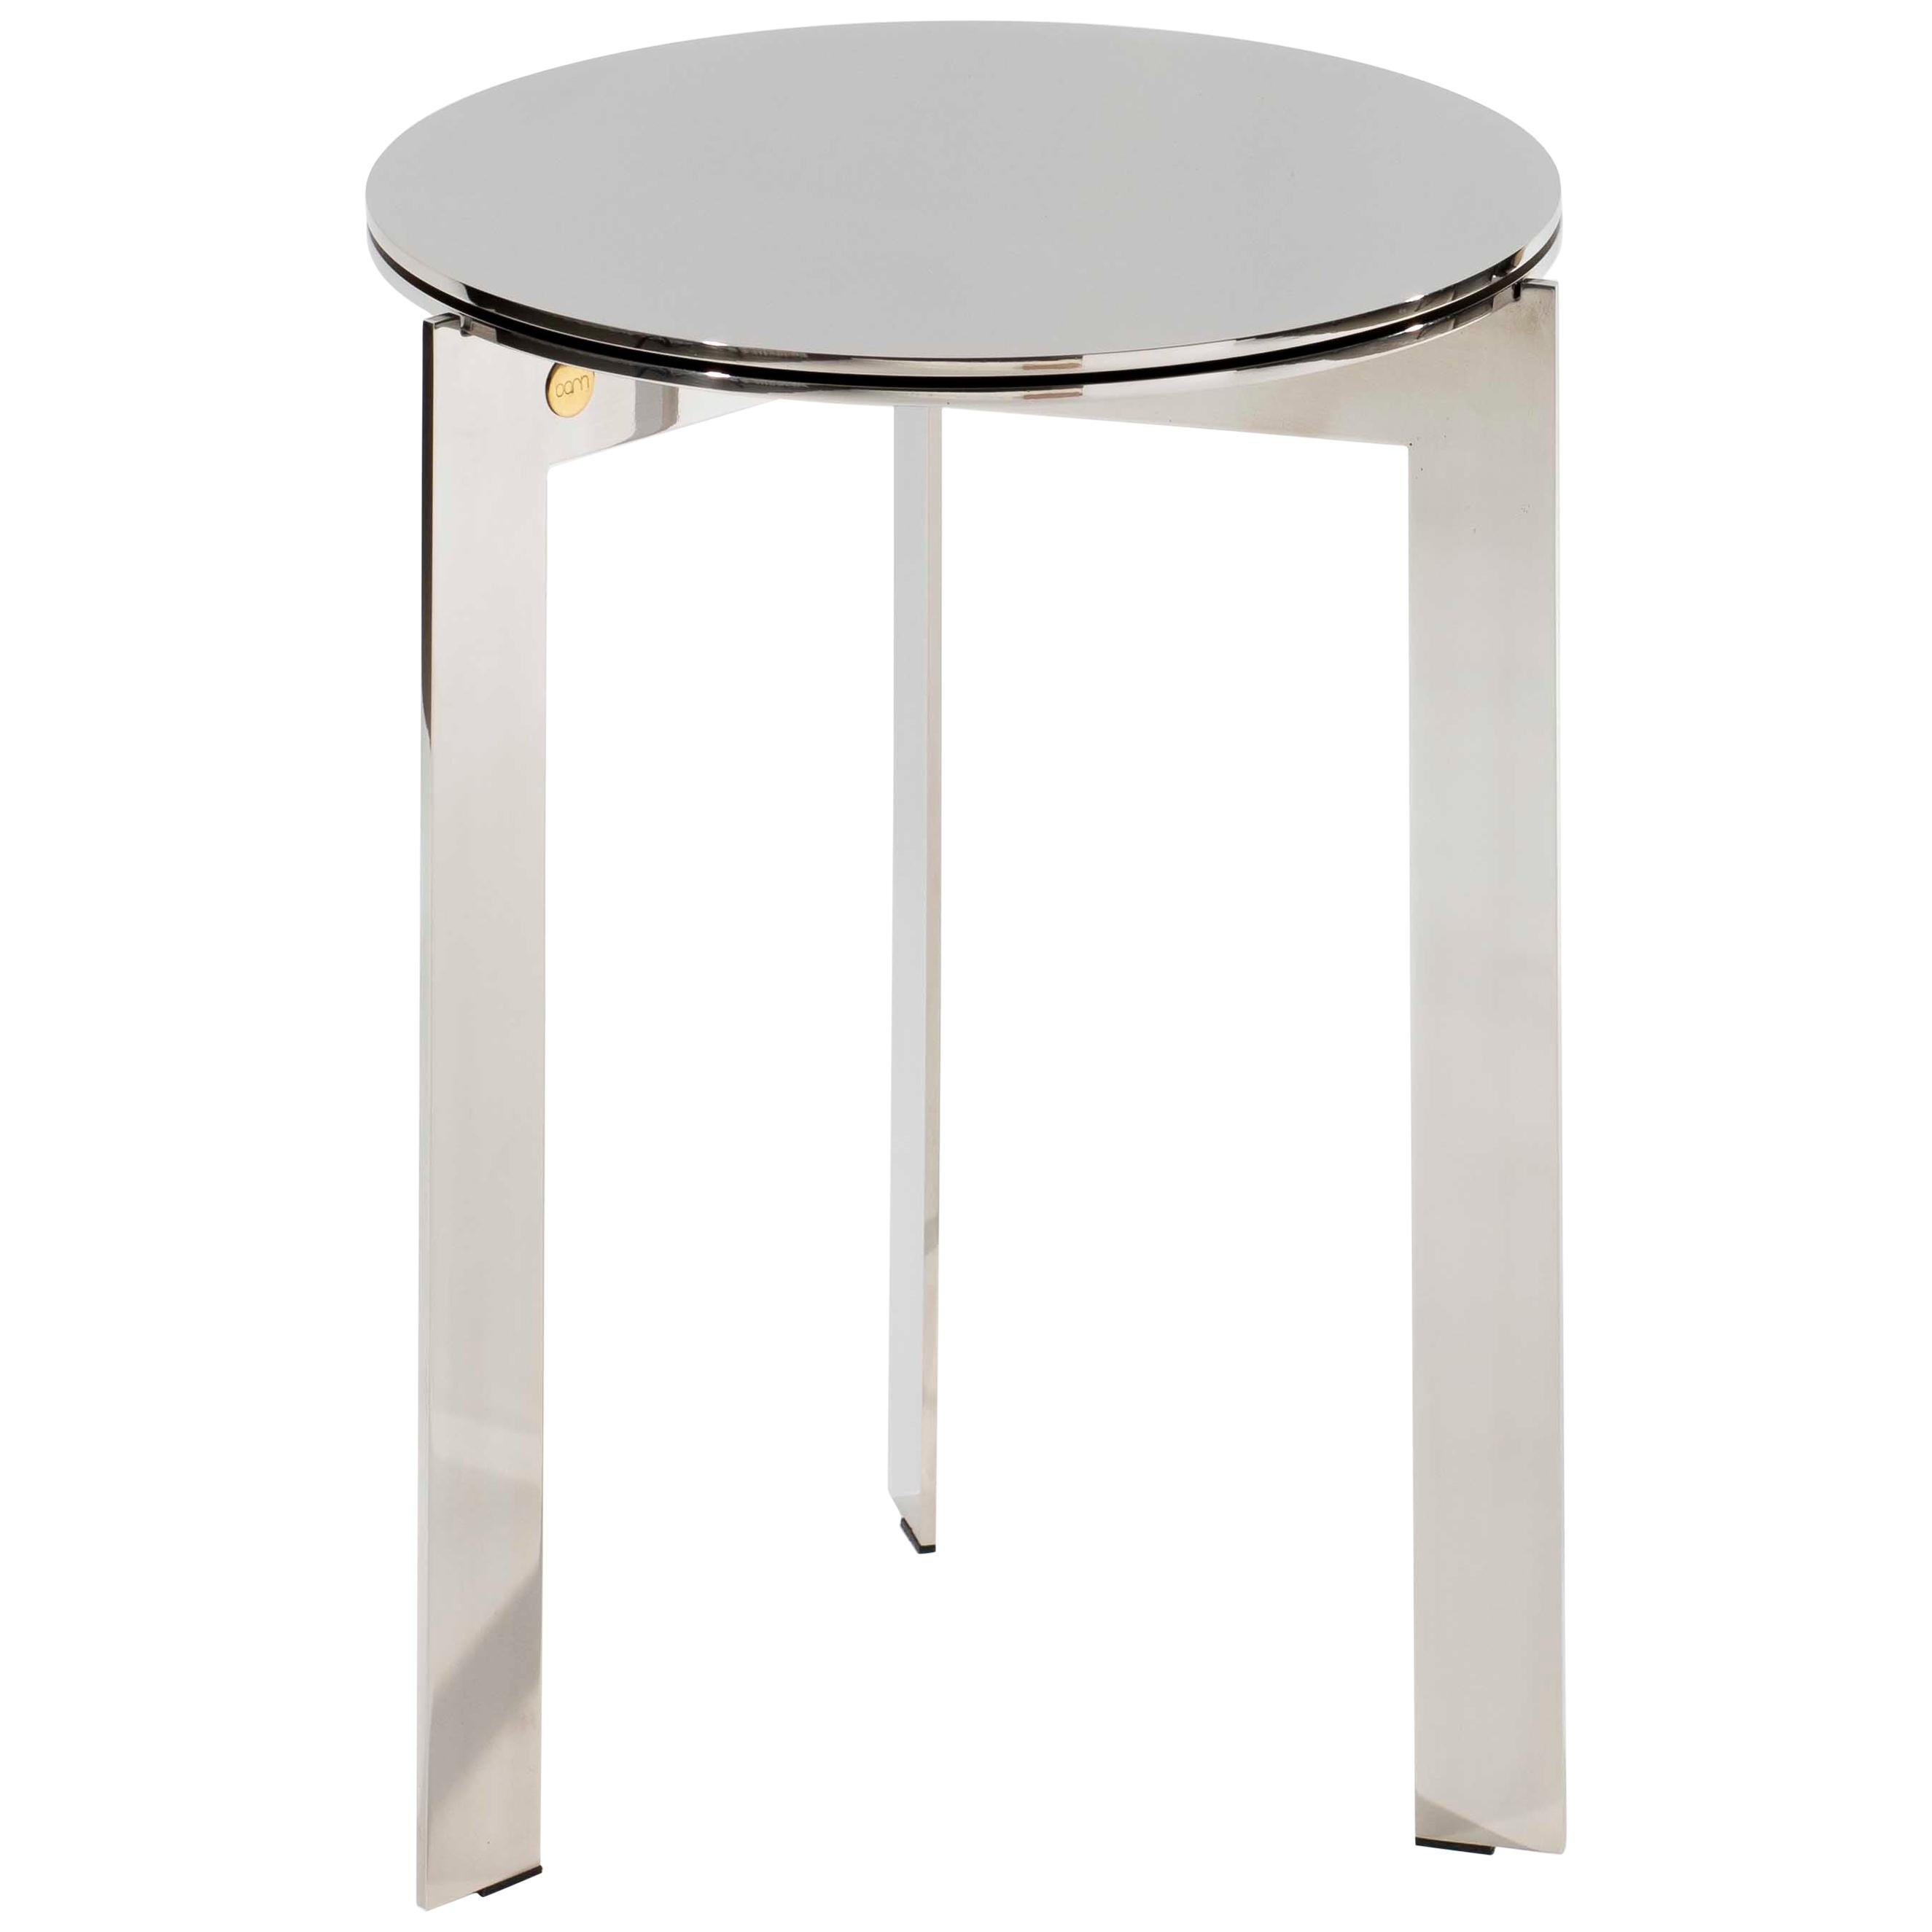 Contemporary Polished Stainless Steel Side Table, Joined RO50.3 c by Barh